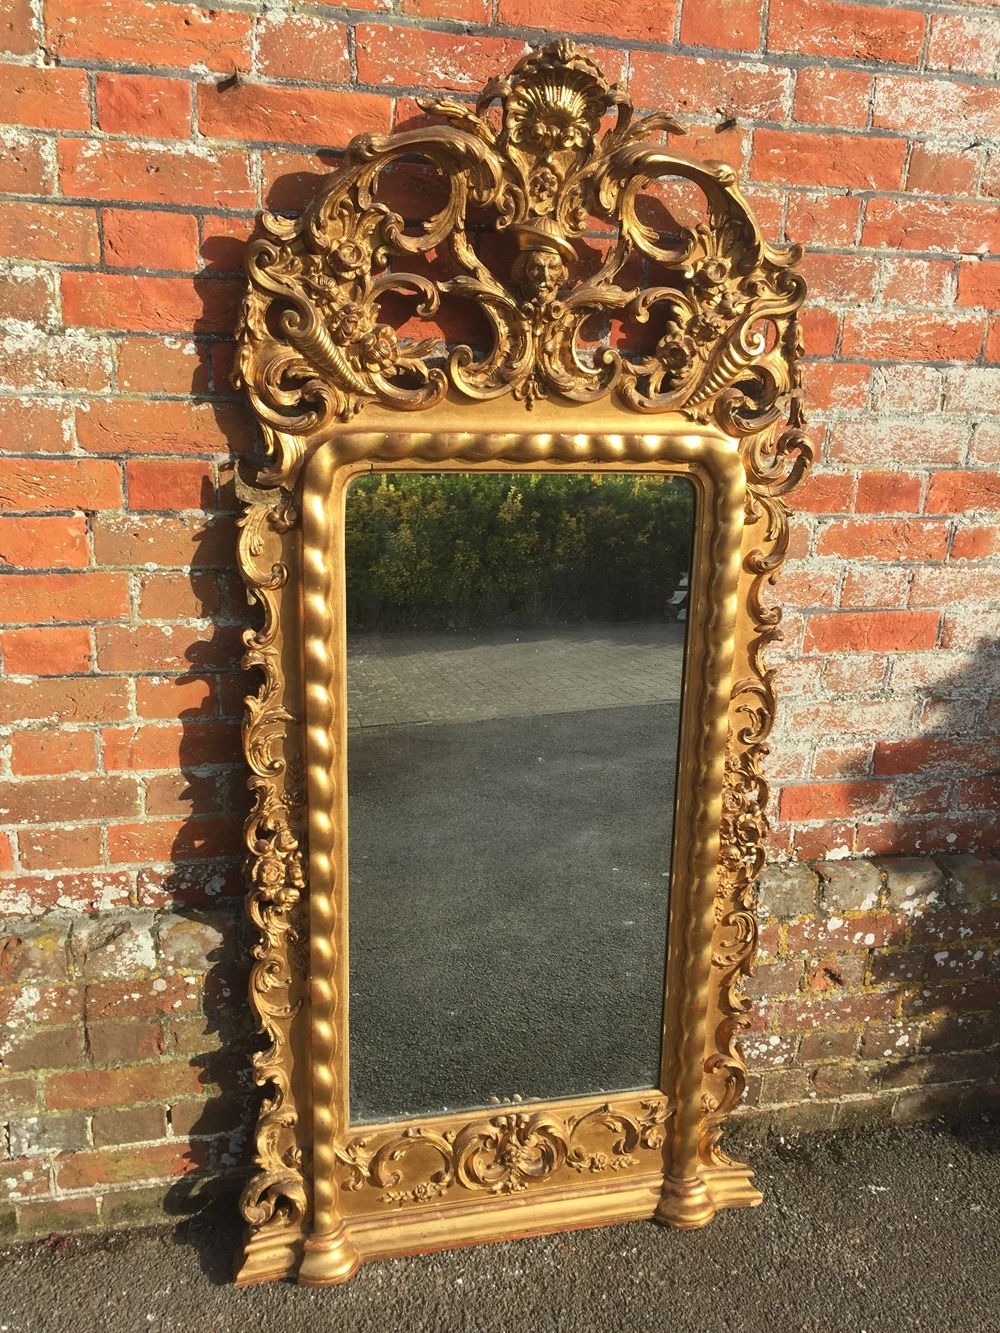 Large Overmantle Mirrors Uk Antique Overmantle Mirrors For Sale Intended For Large French Mirrors (Image 13 of 15)